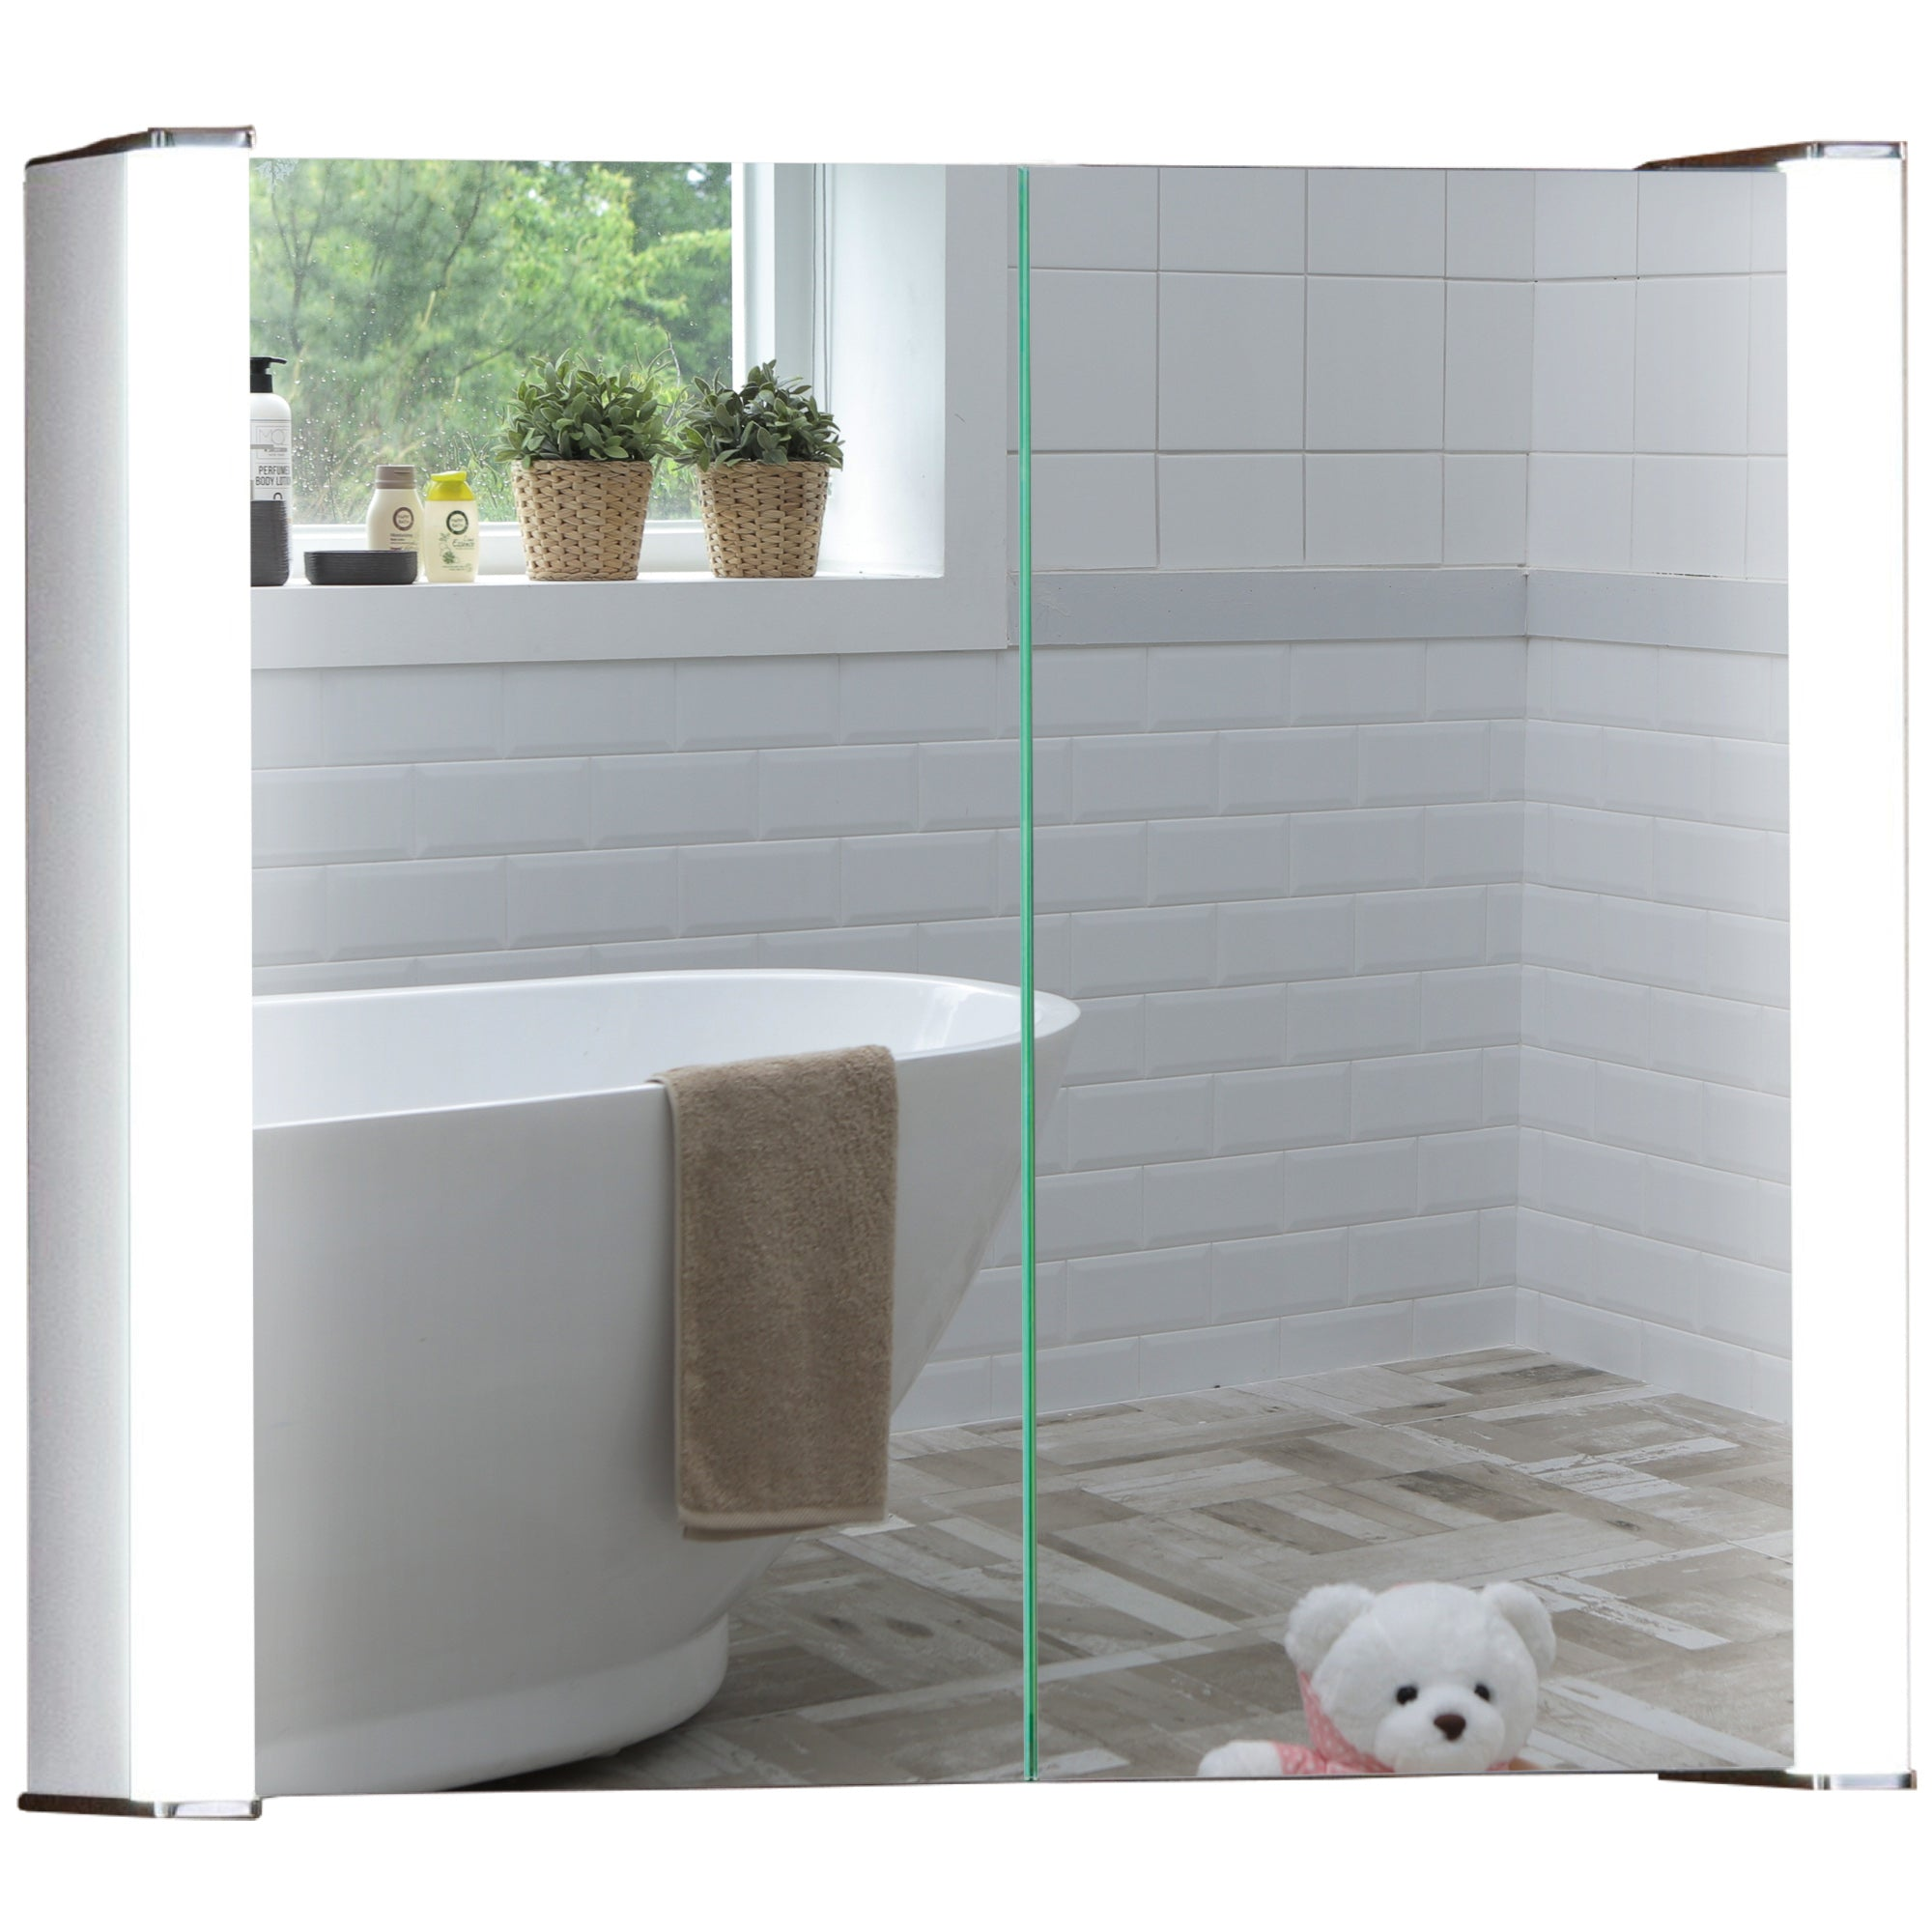 LED Illuminated Bathroom Mirror Cabinet CABM12 Size-60Hx65Wx16Dcm